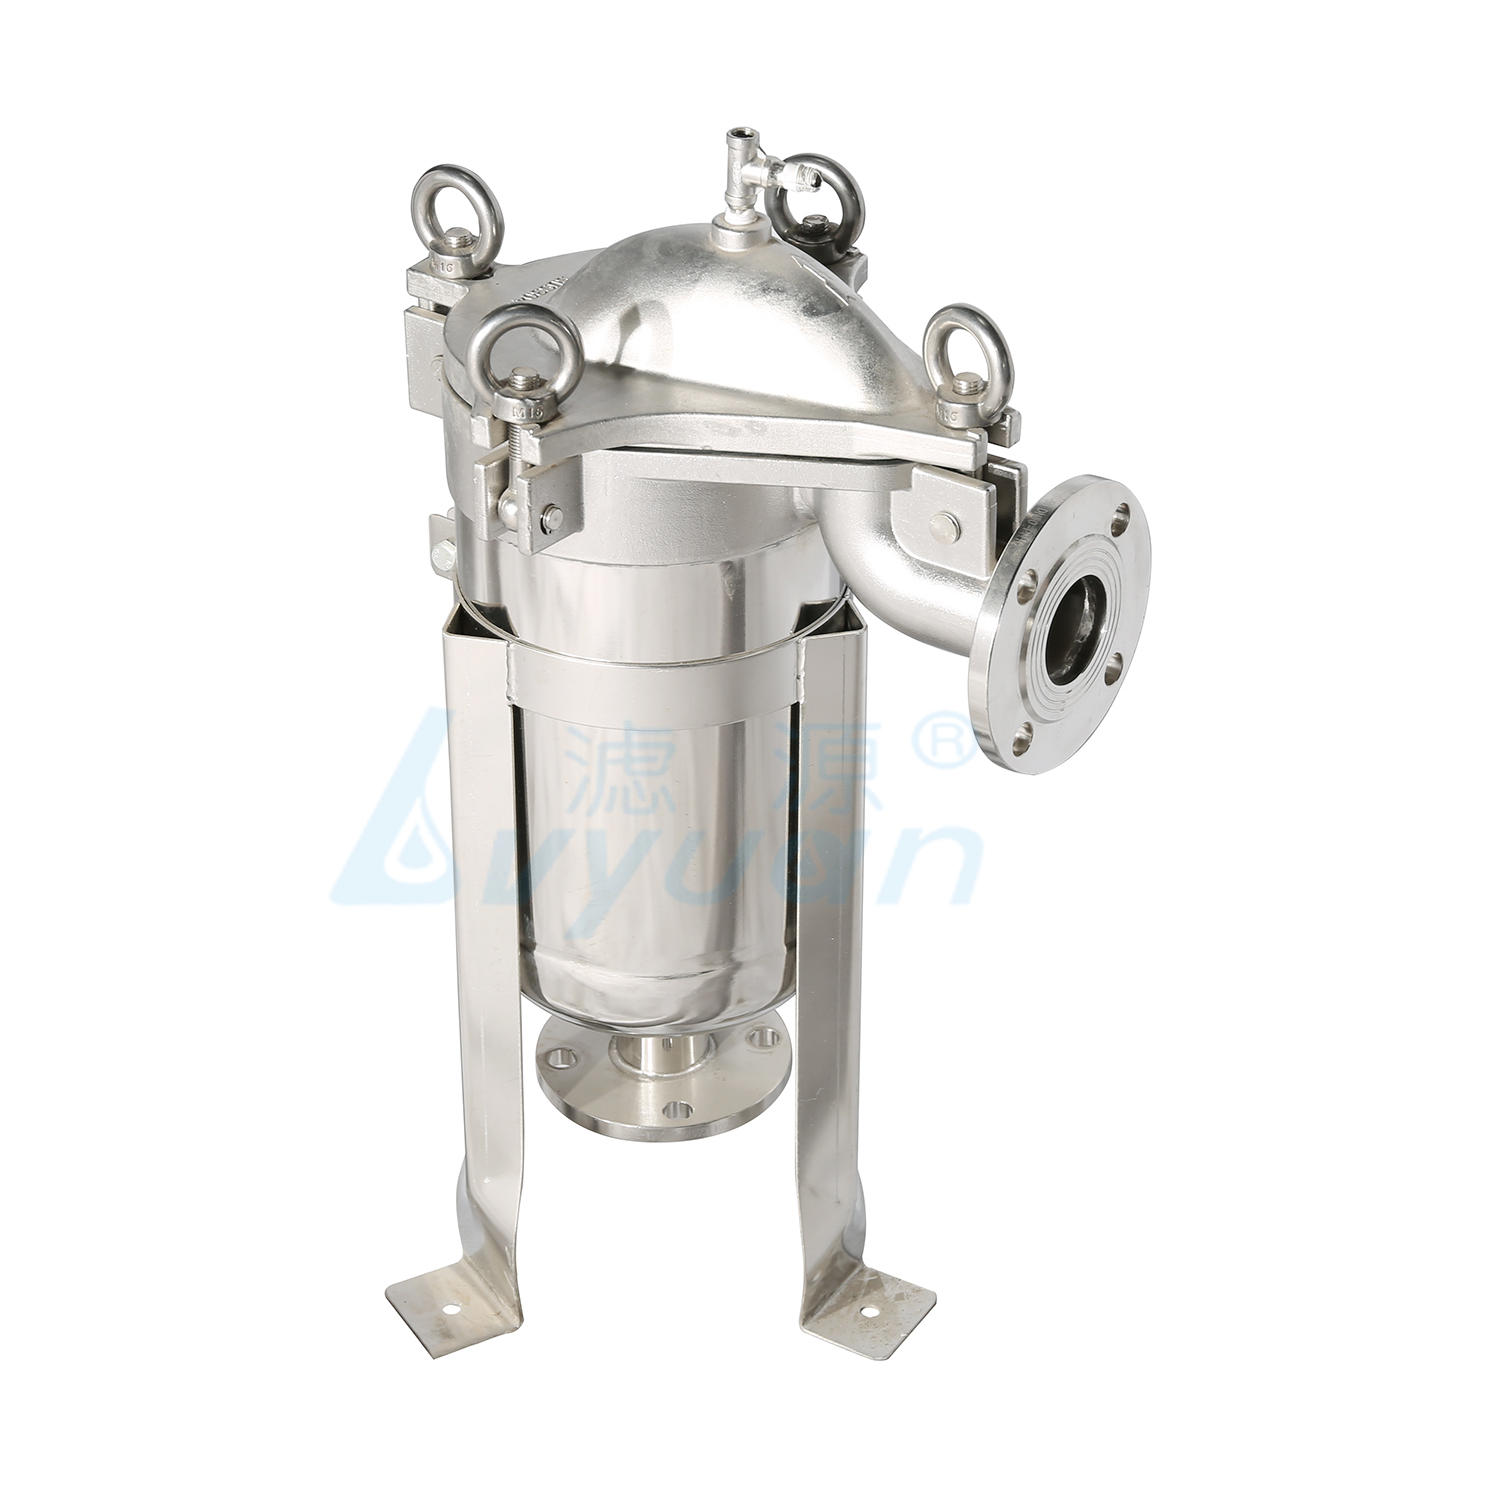 Top-into type hige pressure ss bag filter housing for beverage filtration